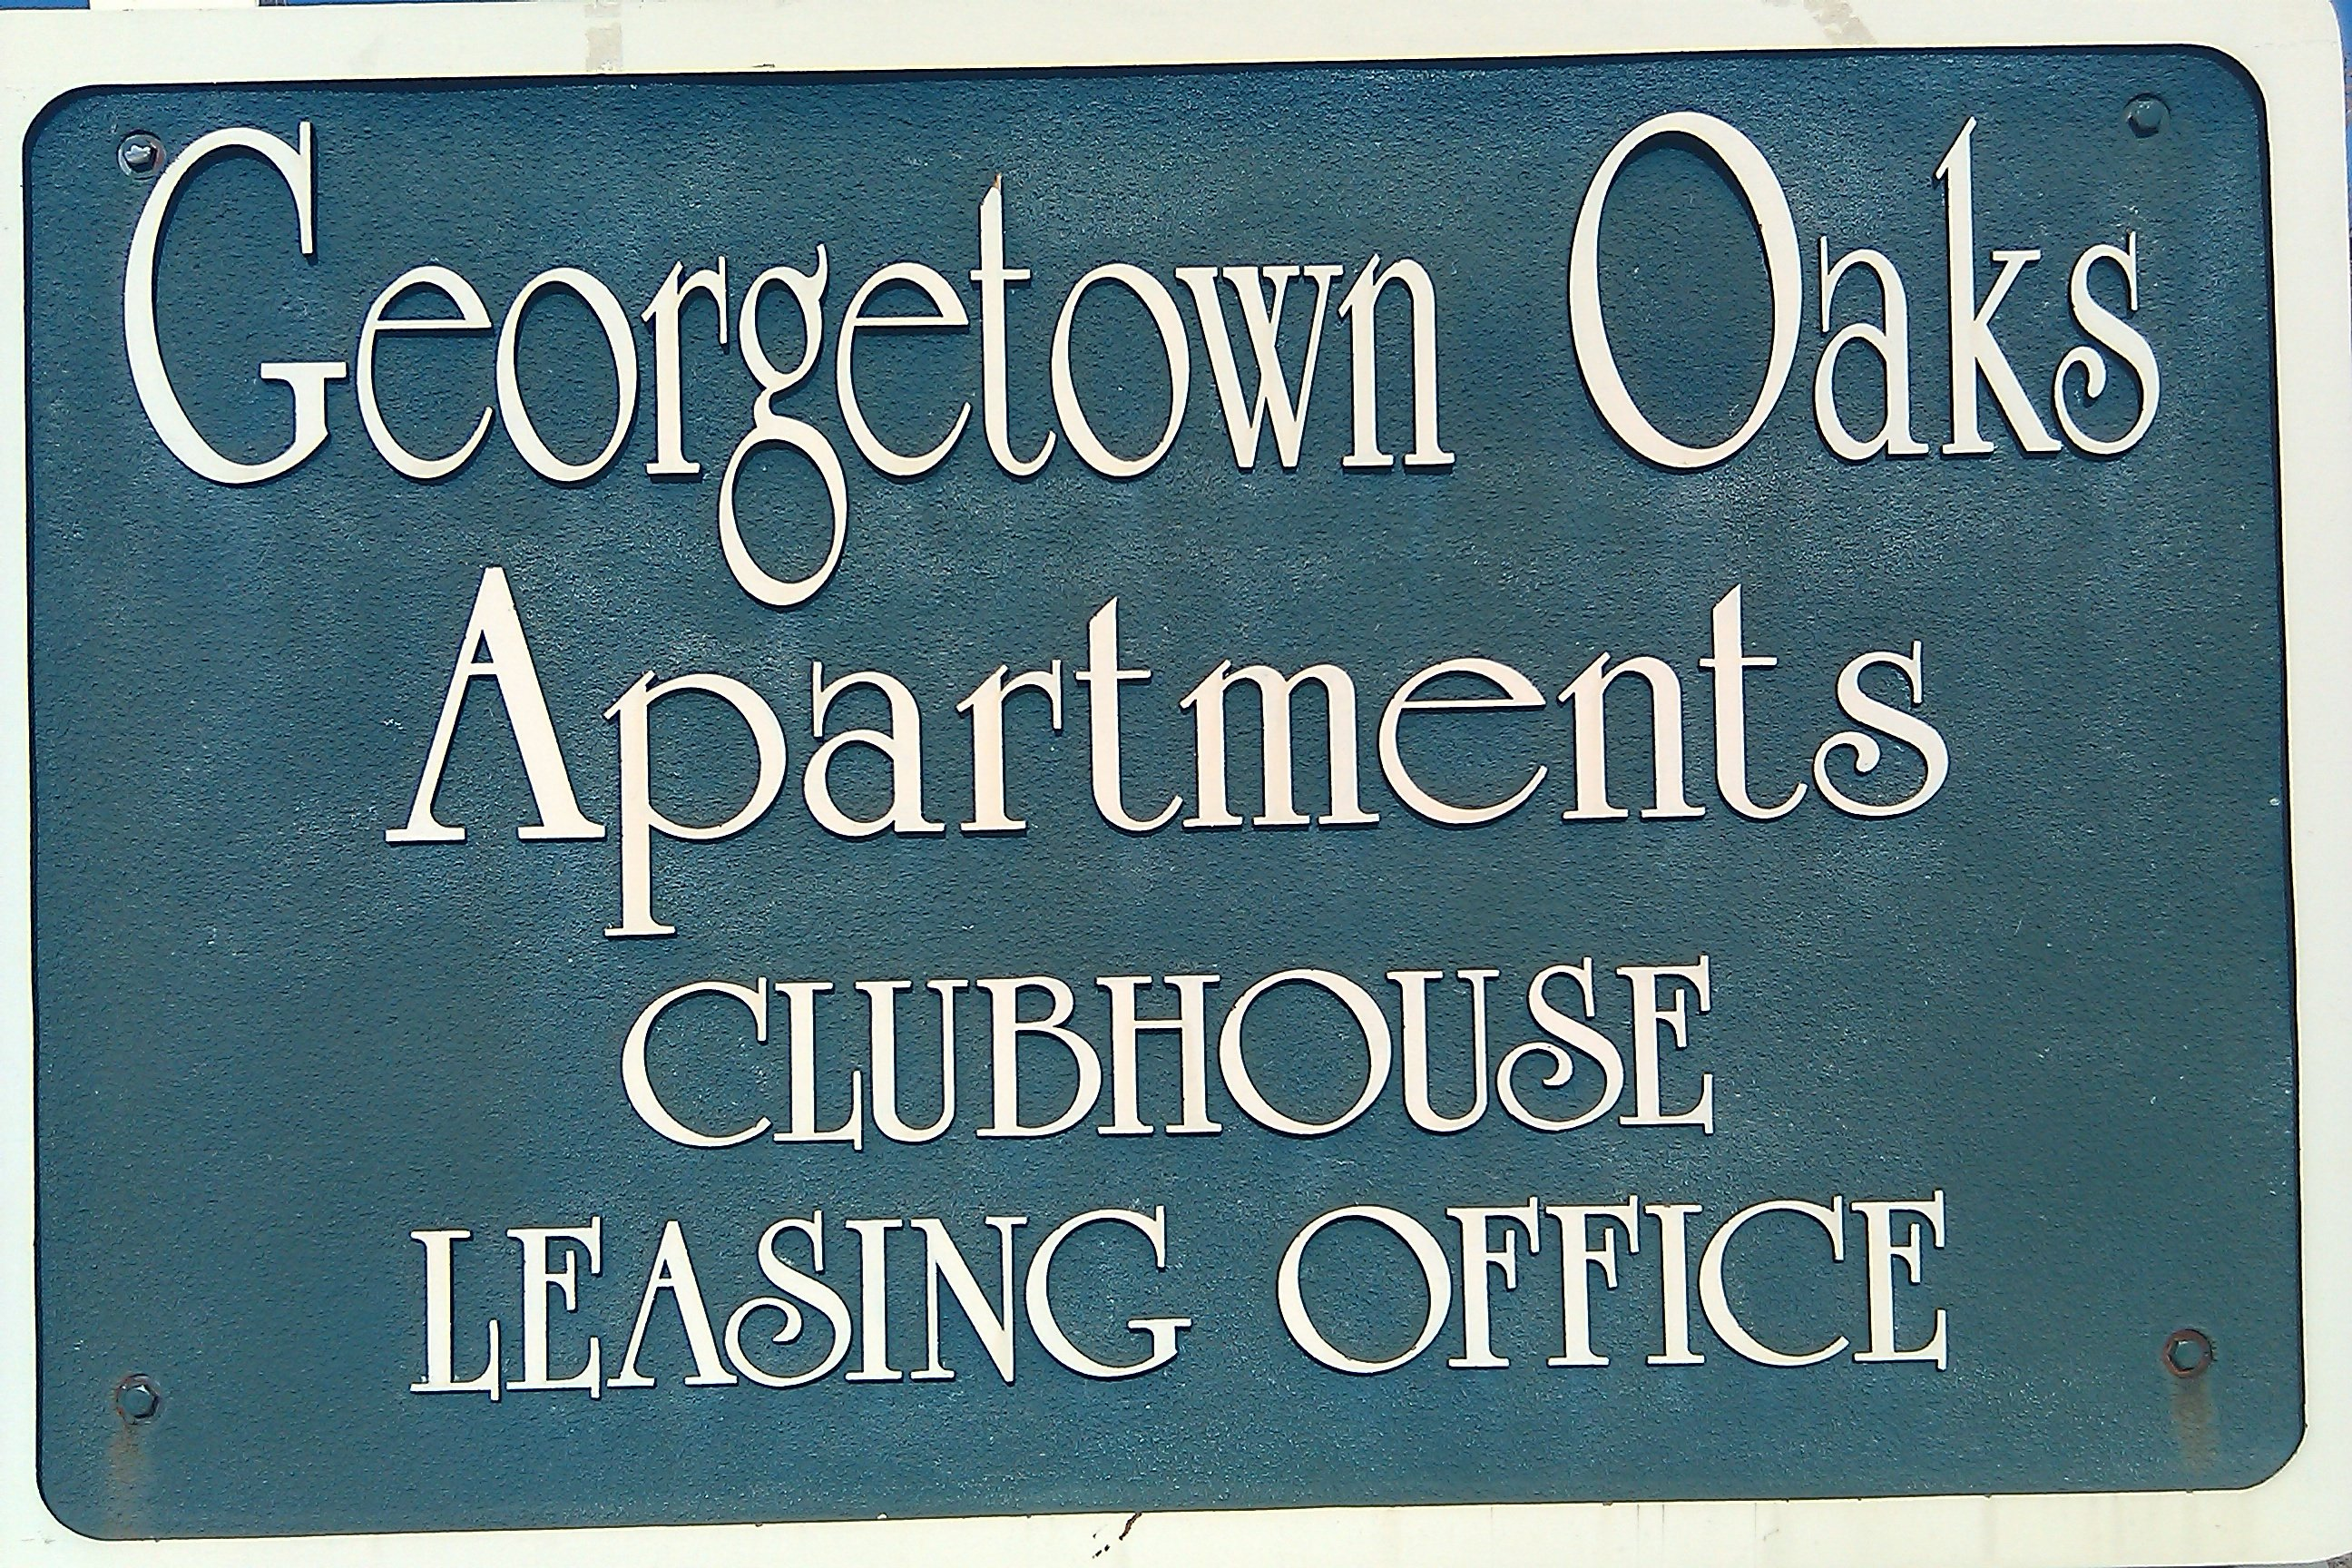 Georgetown Oaks Apartments